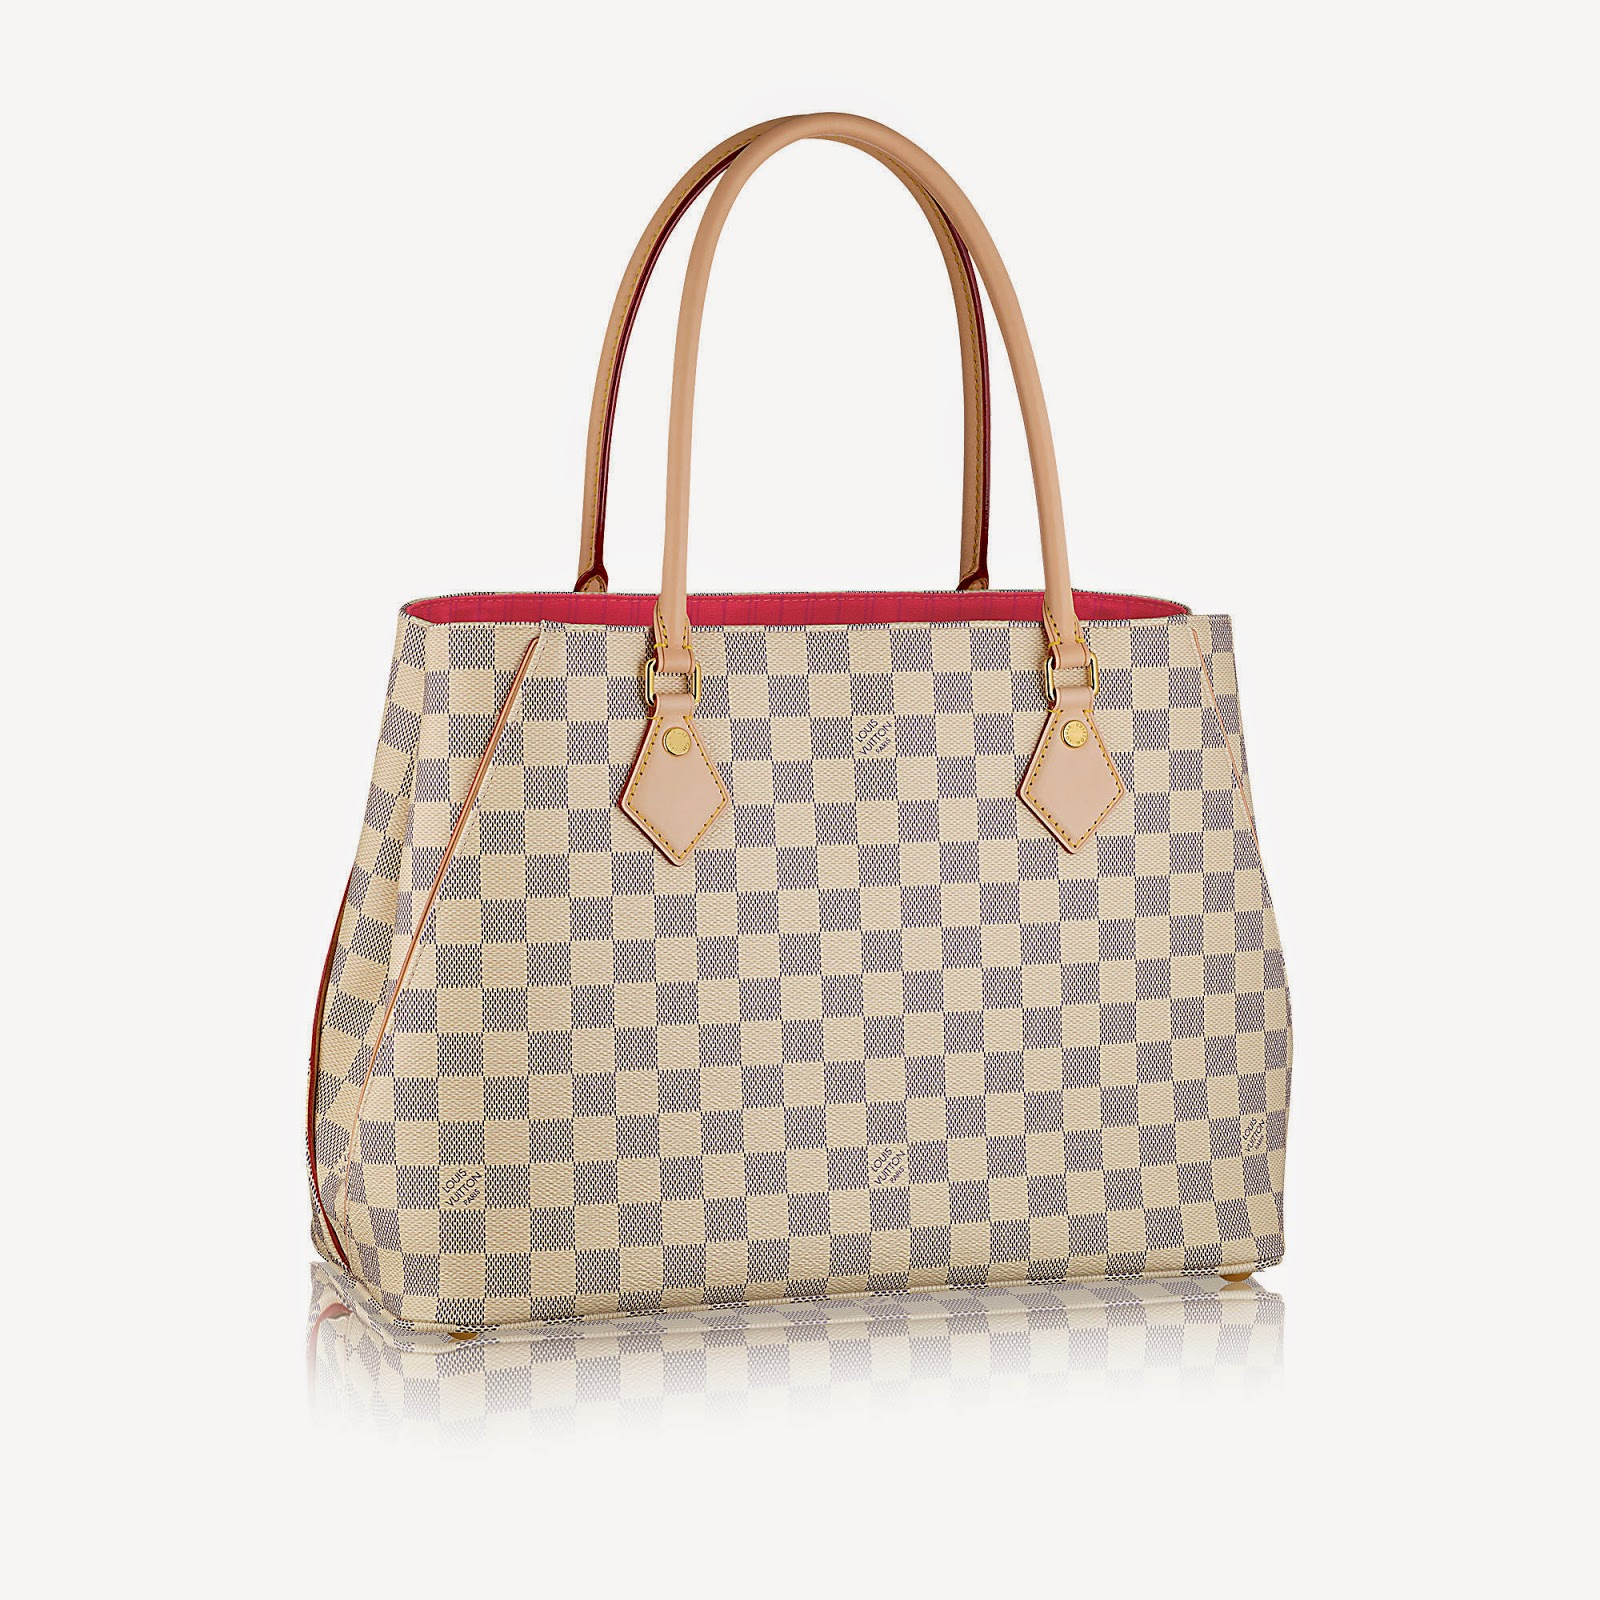 Are Louis Vuitton Bags Er In Paris